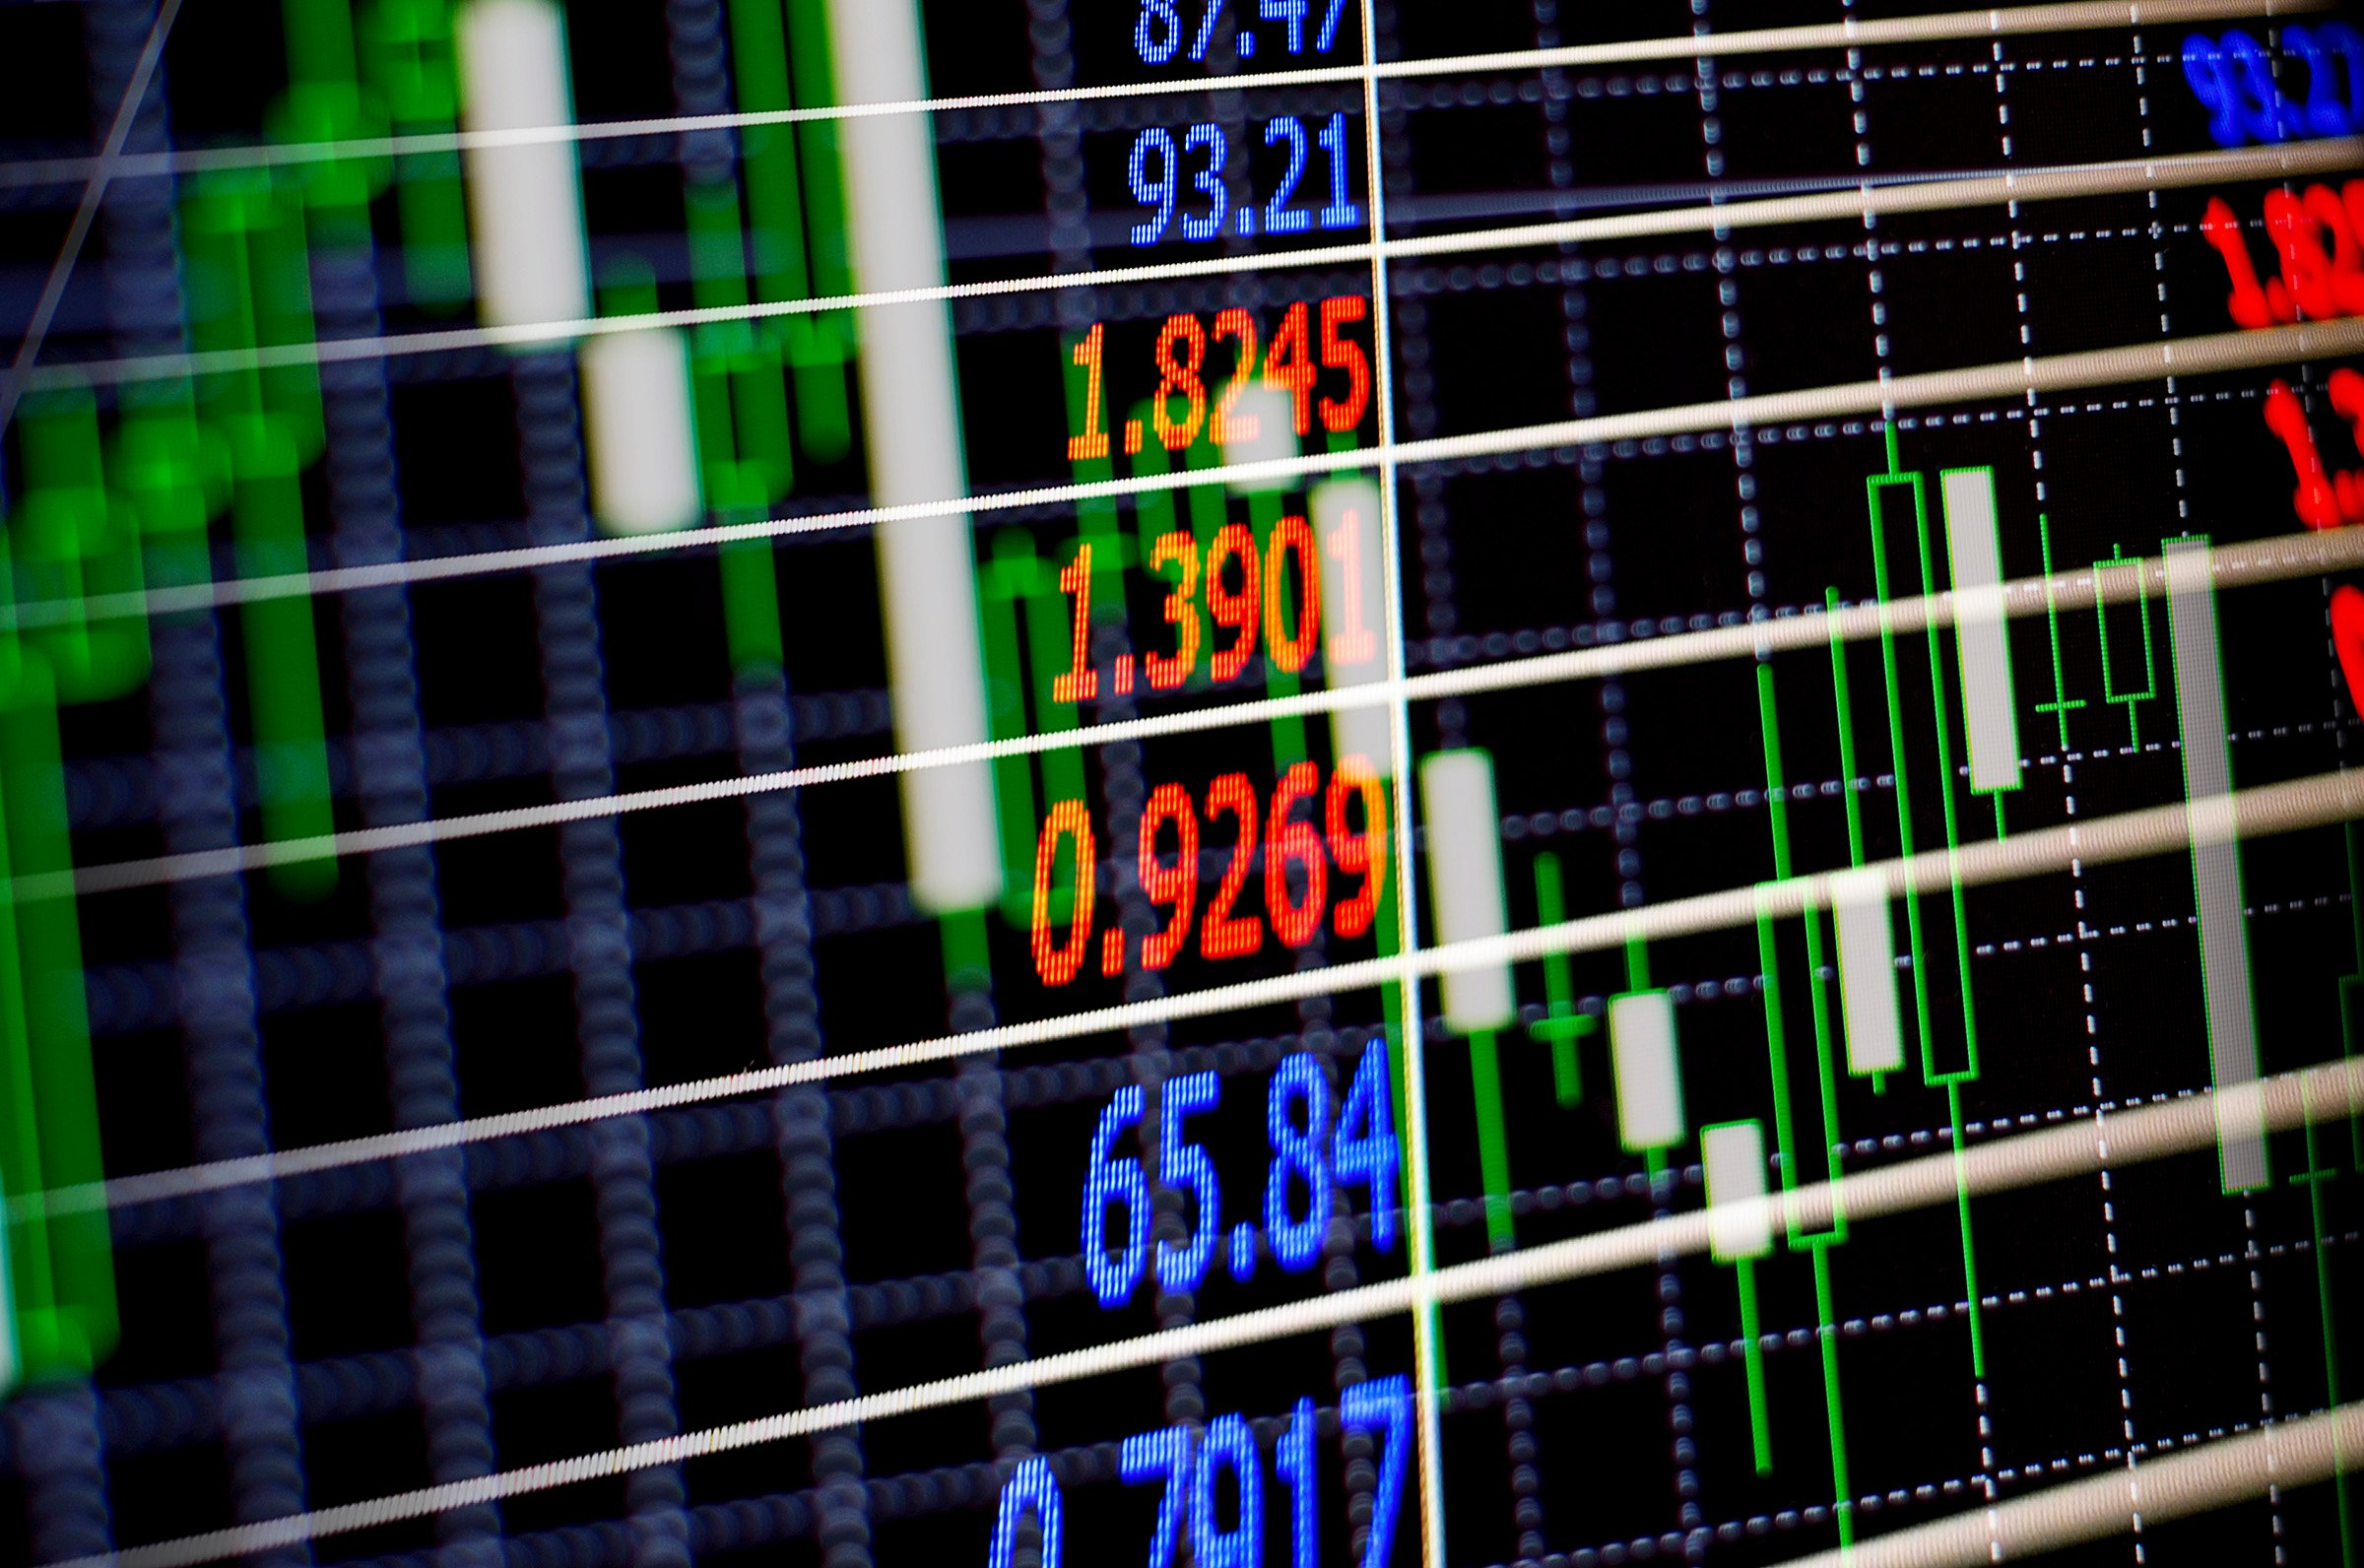 Key Indicators Point To More Upside For Equities